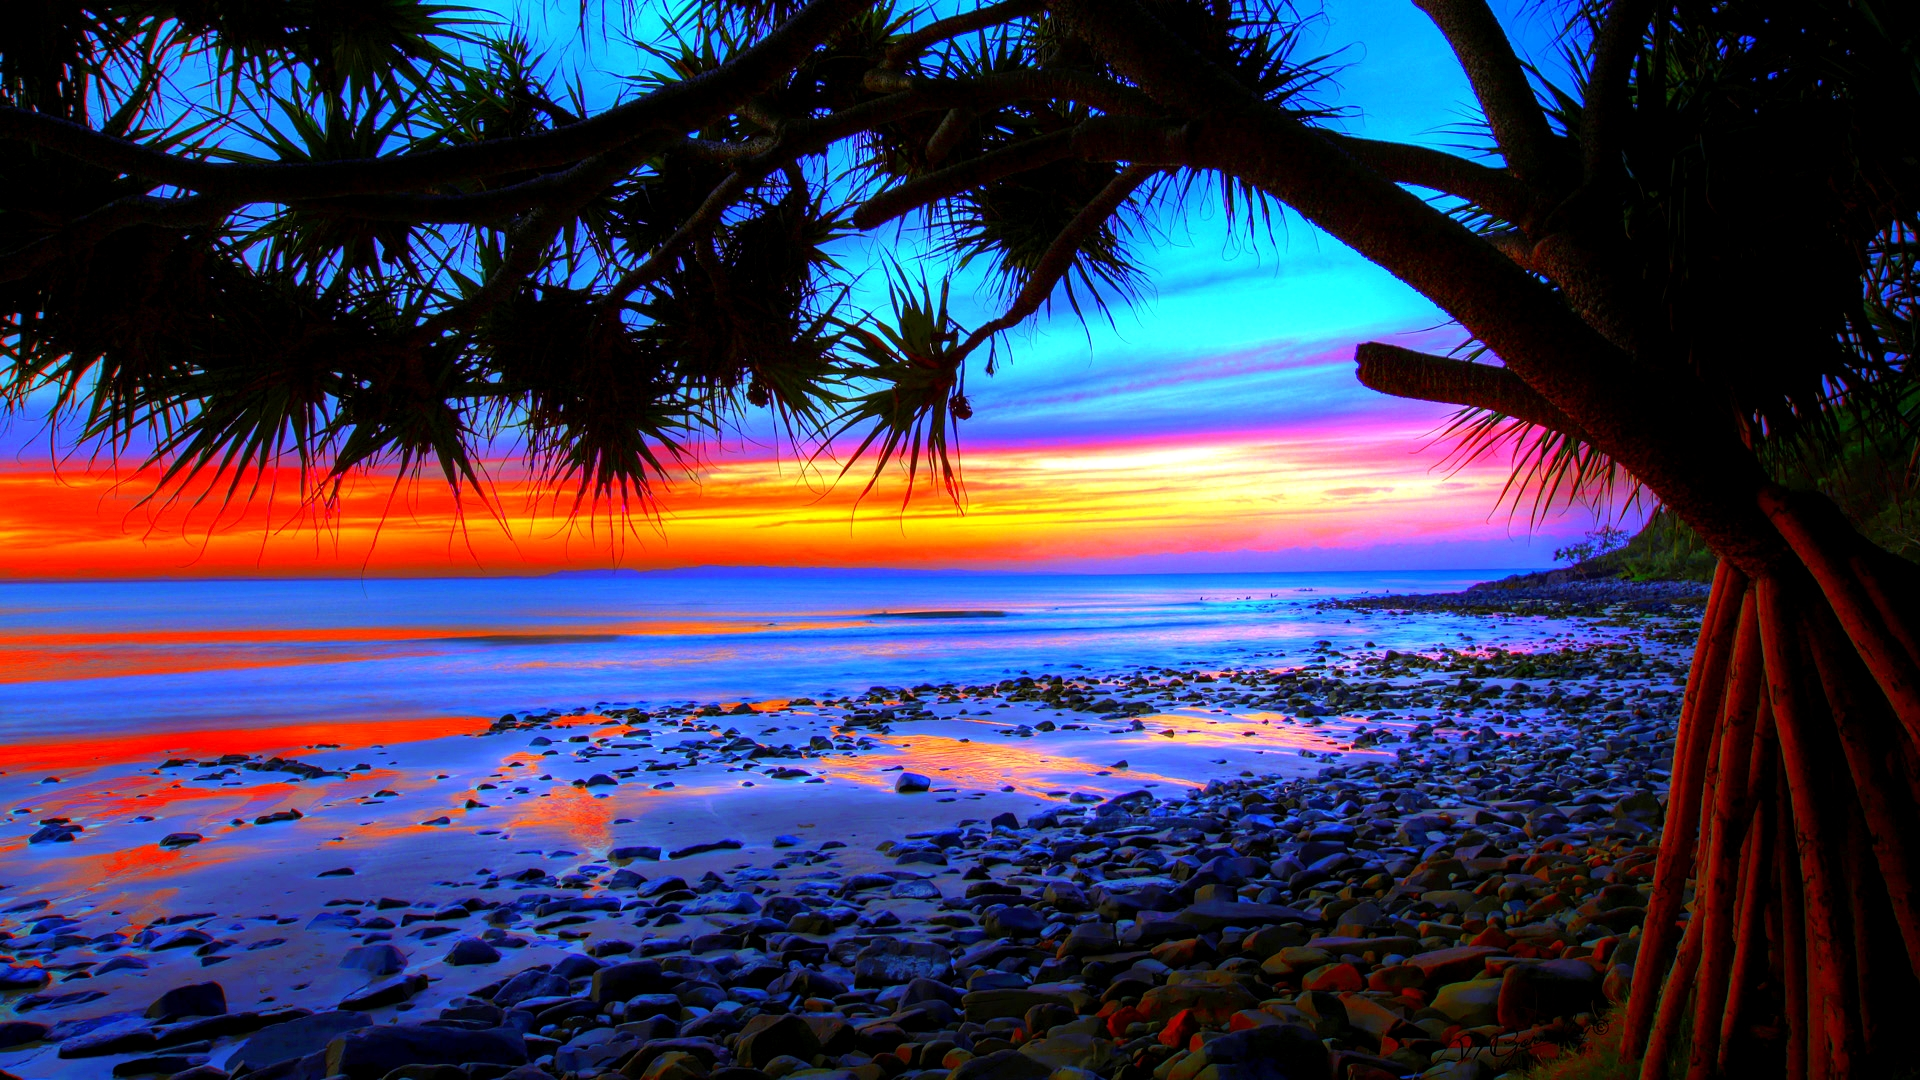 palm trees sunset hd wallpapers palm trees sunset hd wallpapers 1920x1080